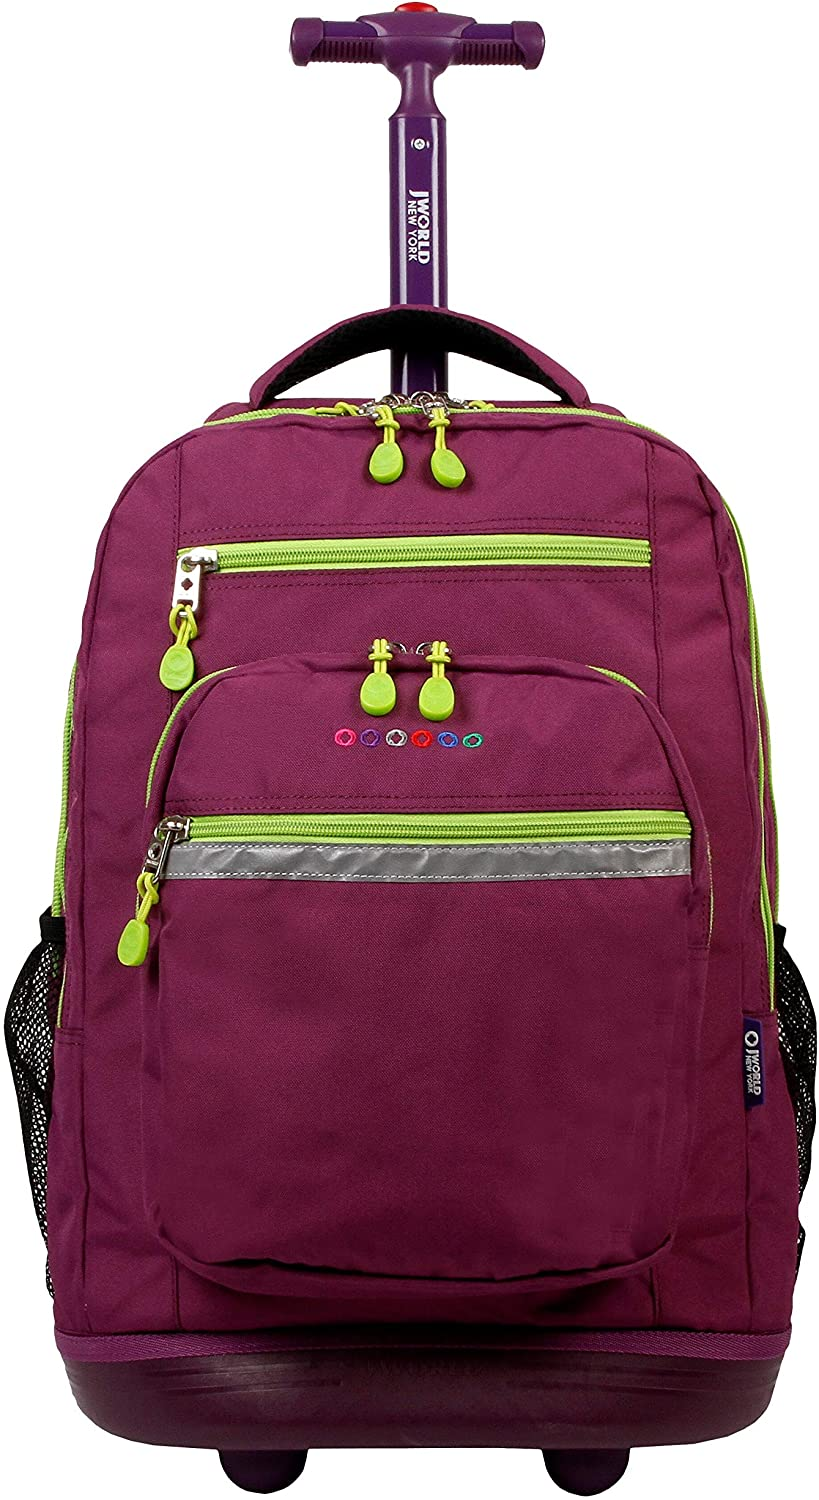 MISC New York Sundance 20-inch Laptop Rolling Backpack - Fits Up to 16-inch Purple Solid Polyester